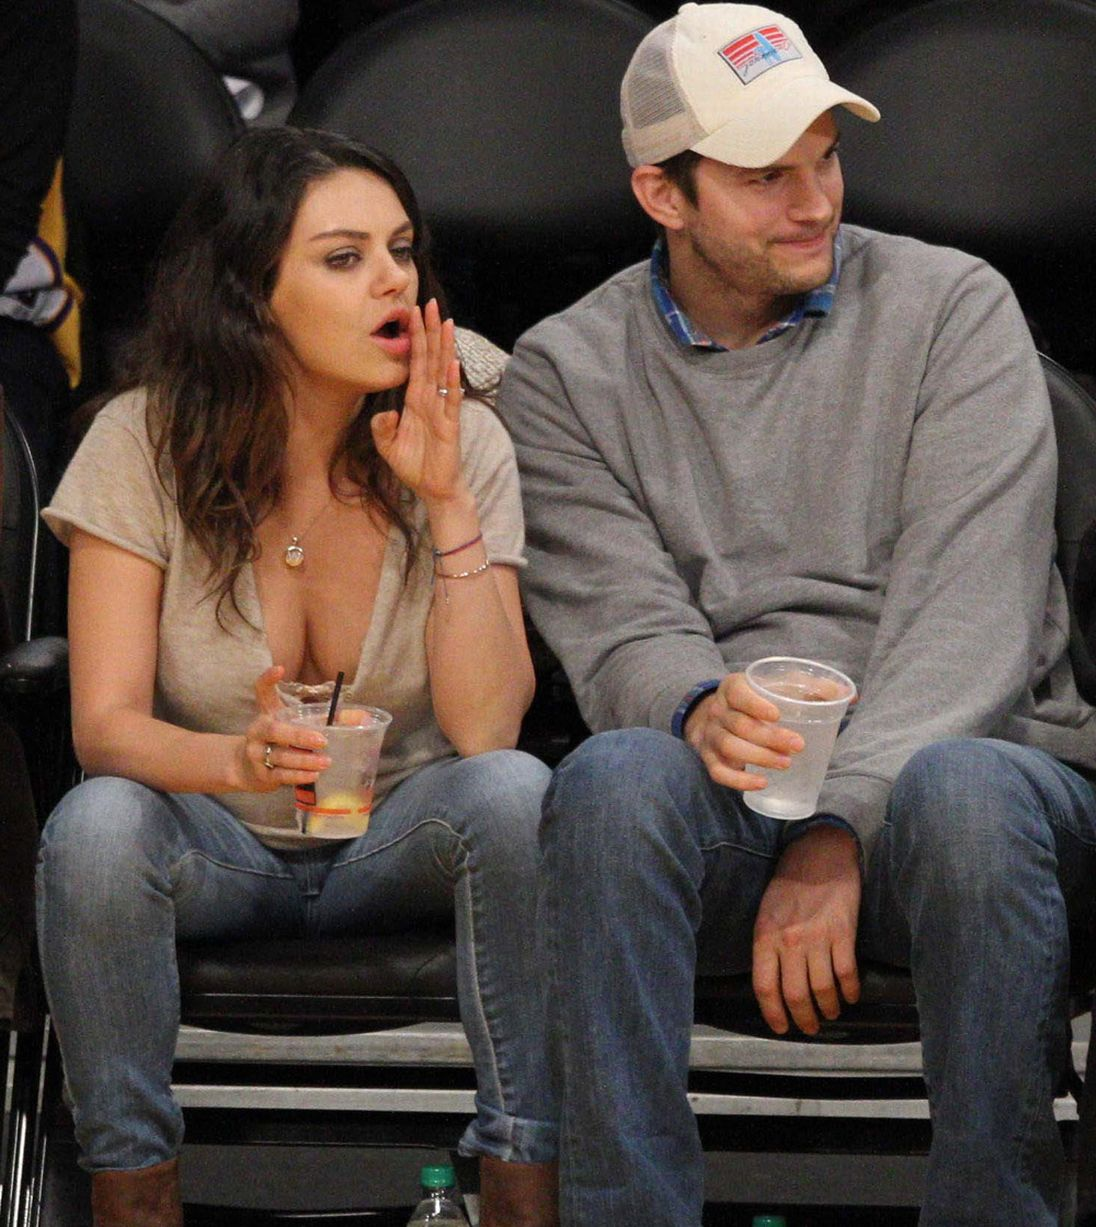 Ashton And Mila Might Finally Get Married This Weekend